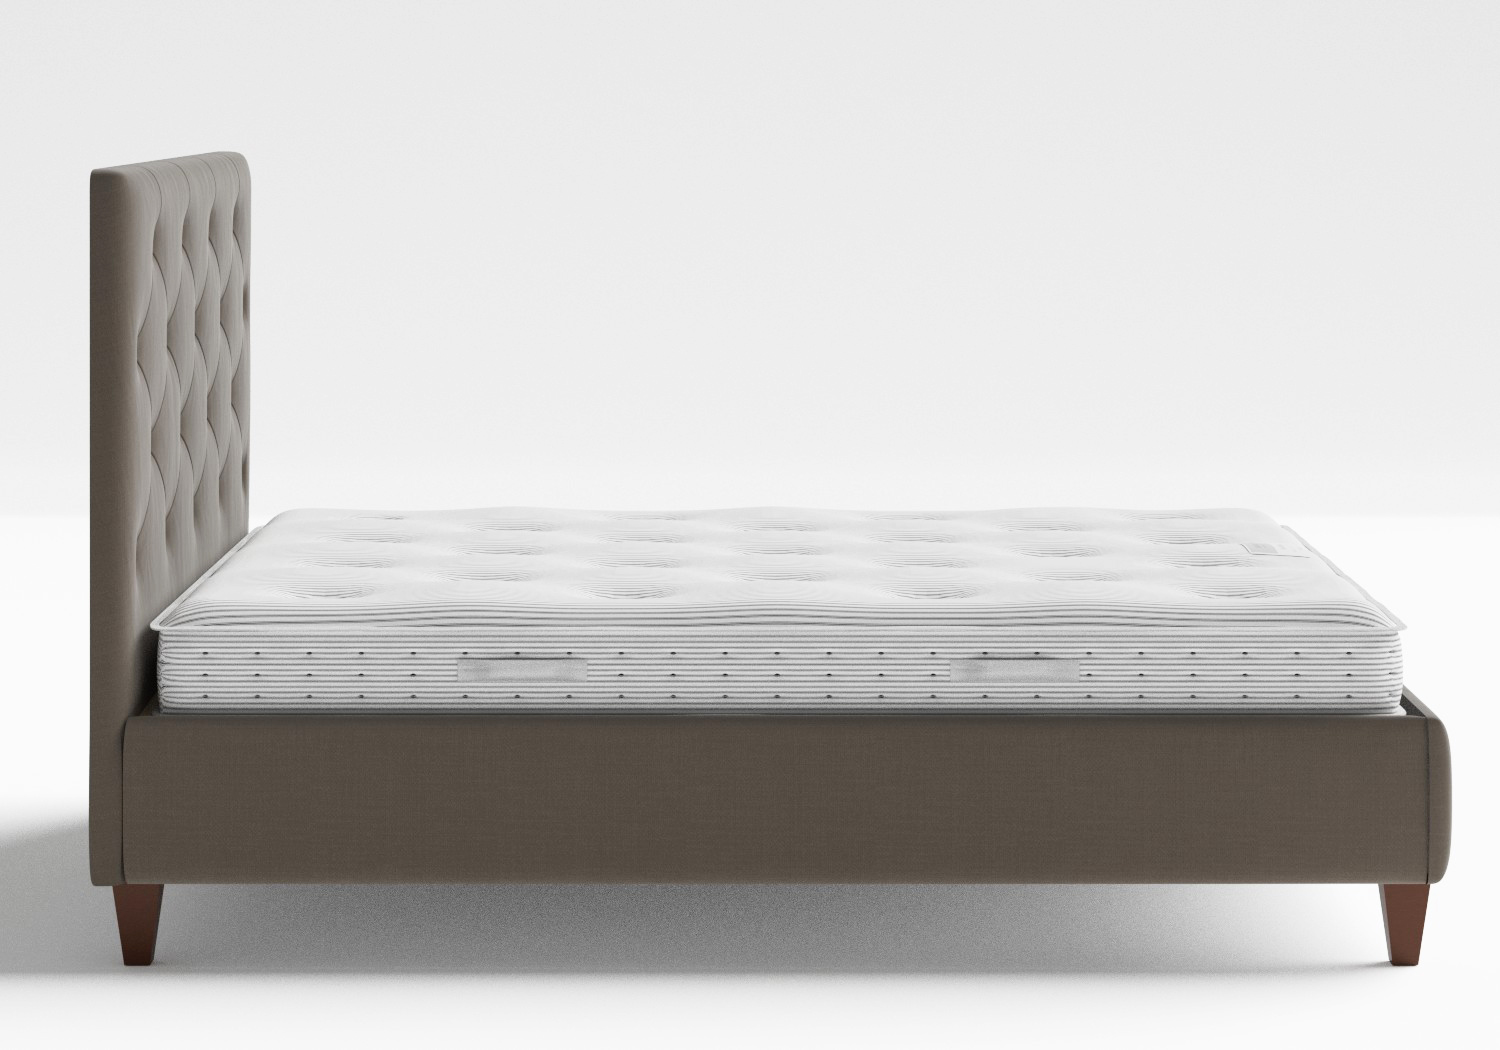 Yushan Upholstered Bed in Grey fabric with buttoning shown with slatted frame